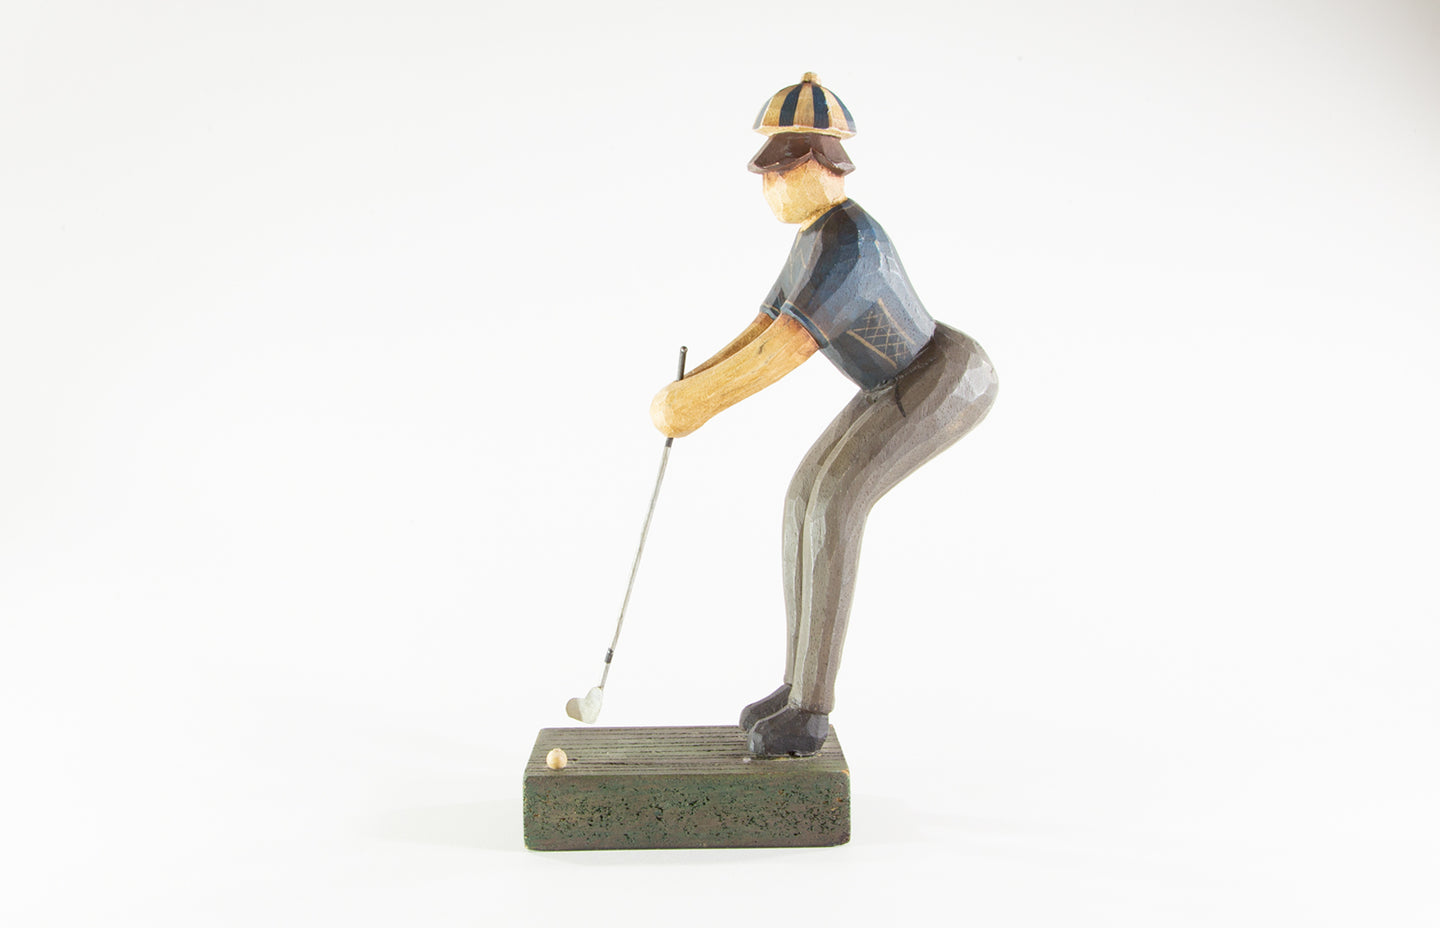 HAND CRAFTED / PAINTED WOODEN GOLFER 'PUTTING A BALL' CARVED SCULPTURE/FIGURINE